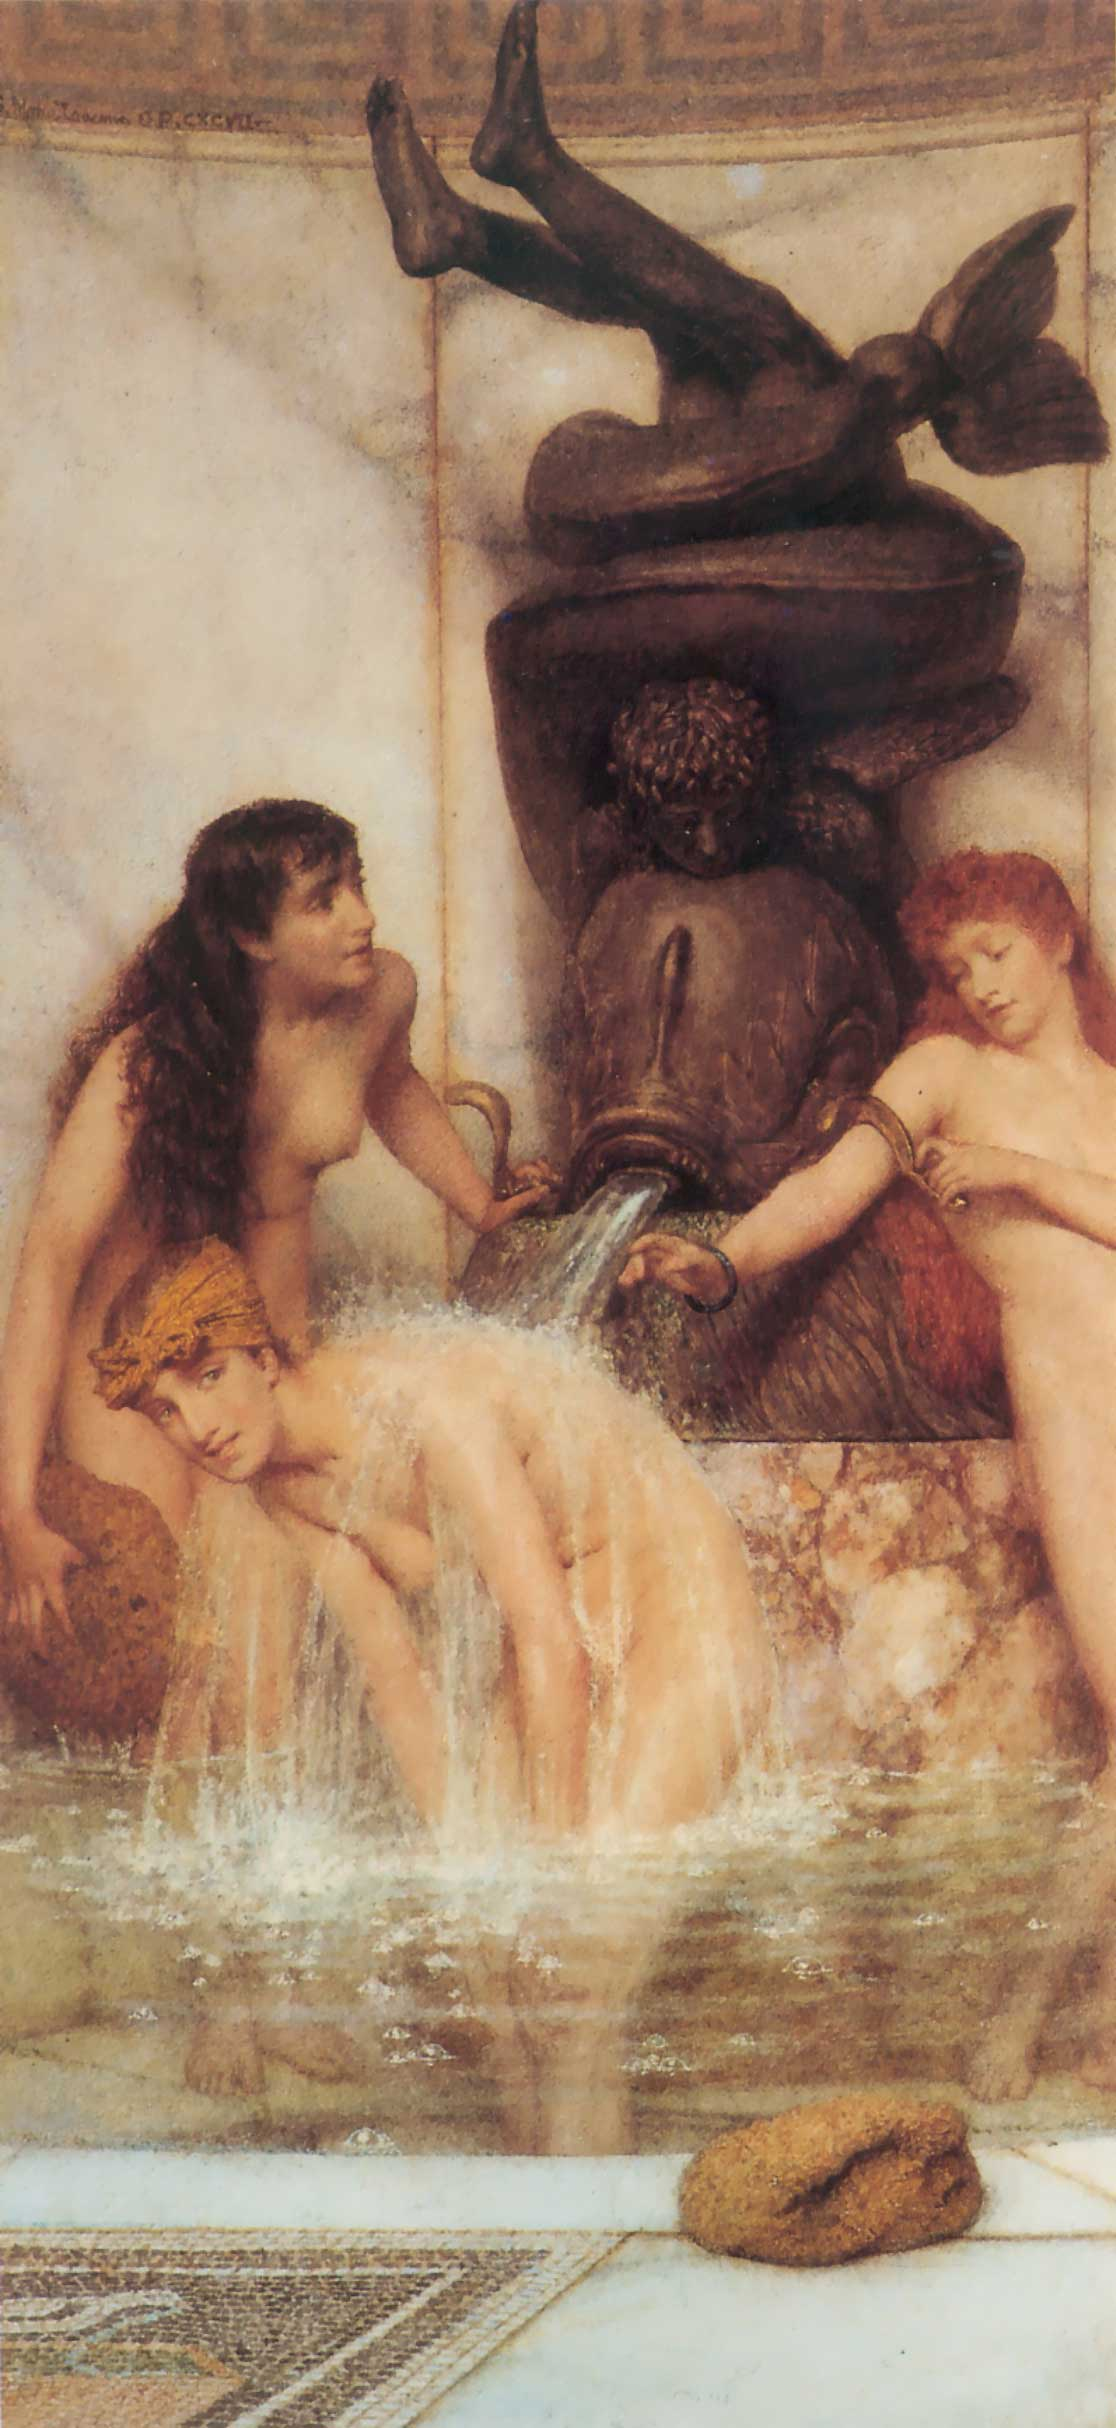 Sir Lawrence Alma Tadema, Strigils and Sponges